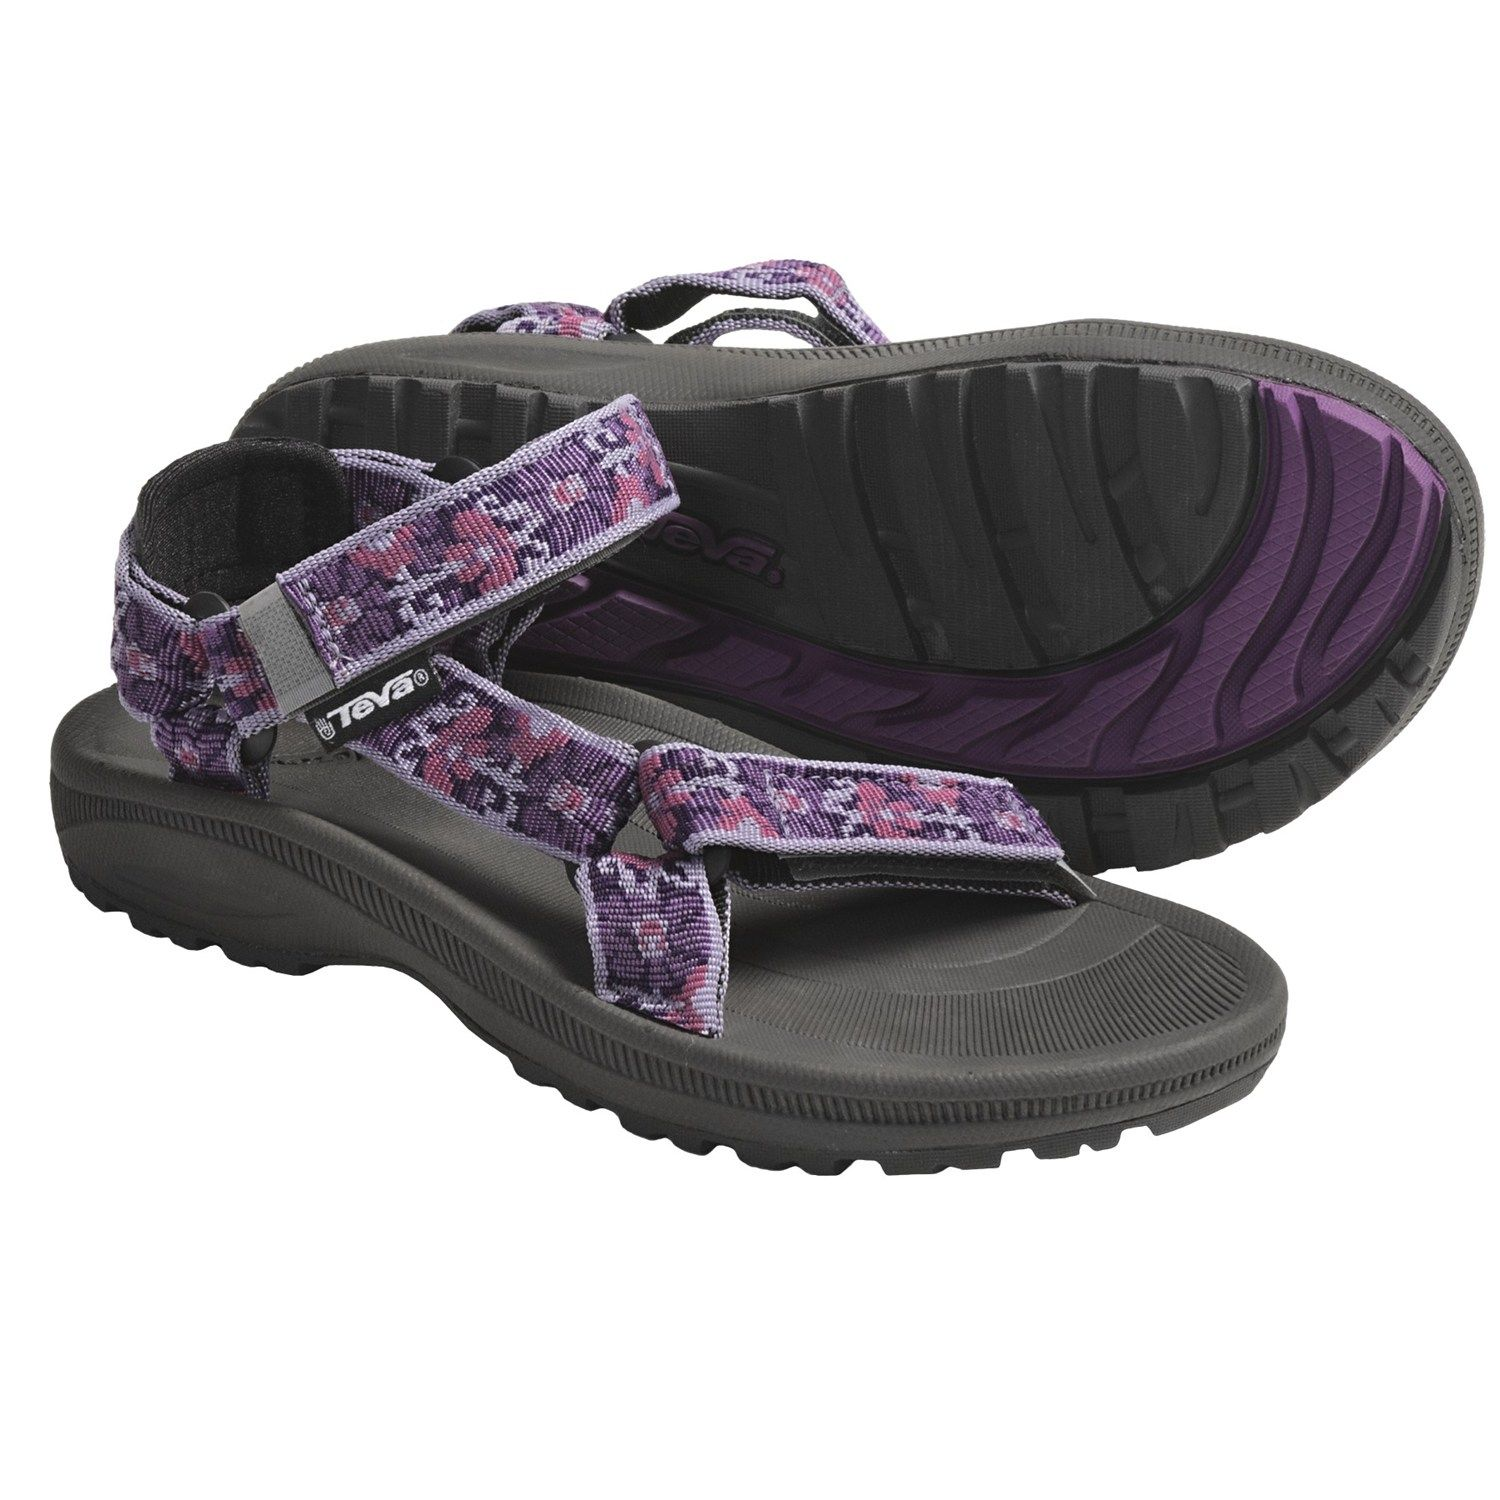 a901b801ec2dc Teva Hurricane 2 Sandals (For Kids and Youth) in Brocart Purple - Sz 6